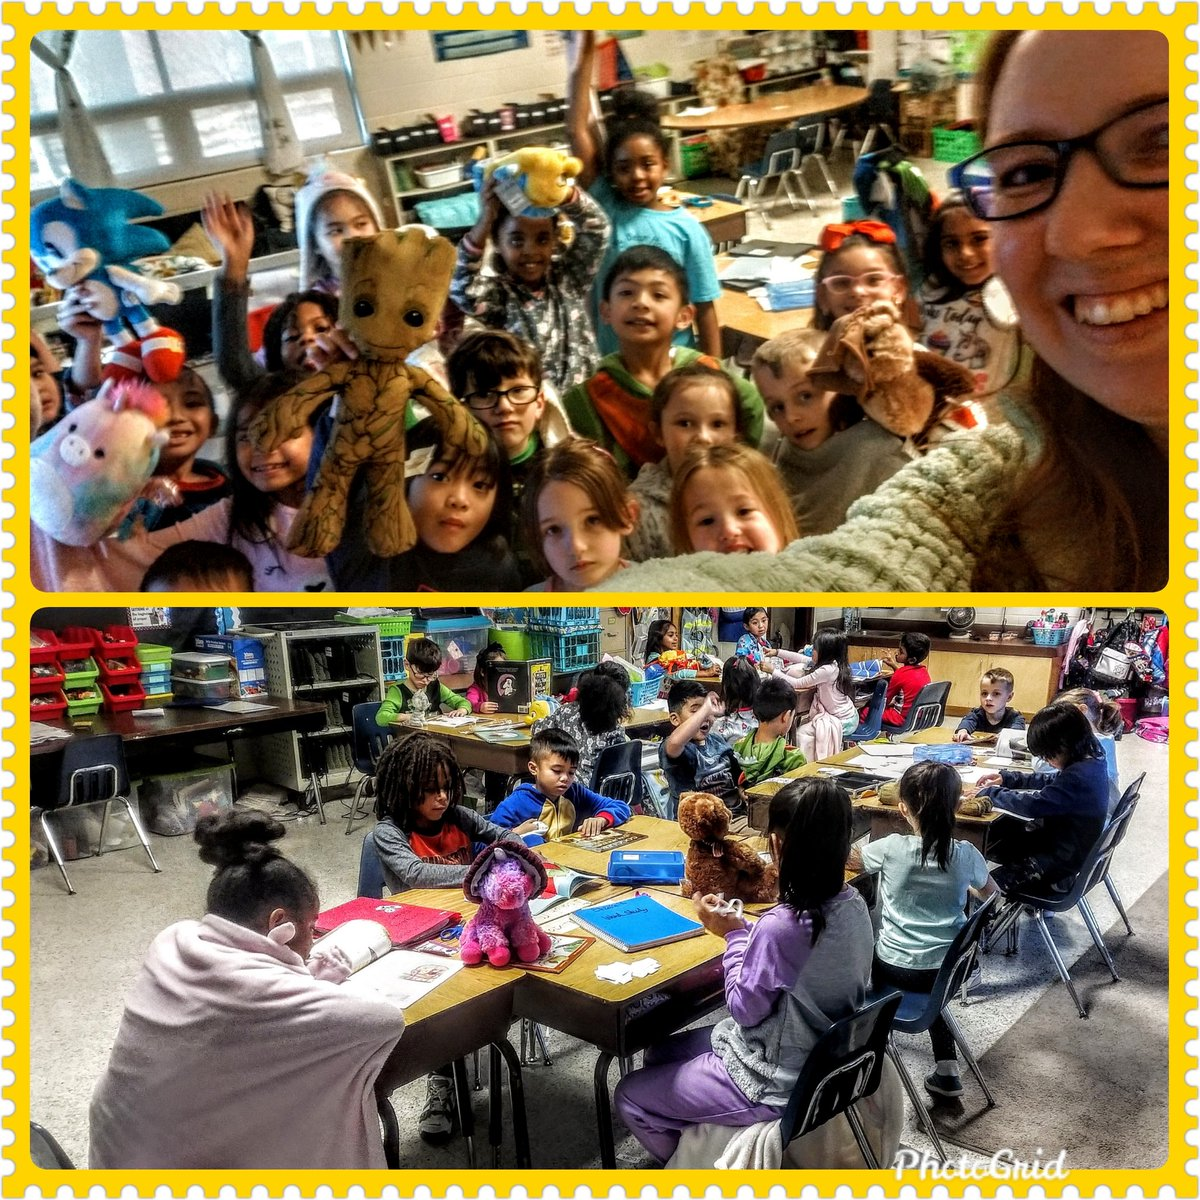 Today was D.E.A.R. and our school-wide pajama day! My class thoroughly enjoyed it! @SalemESVB